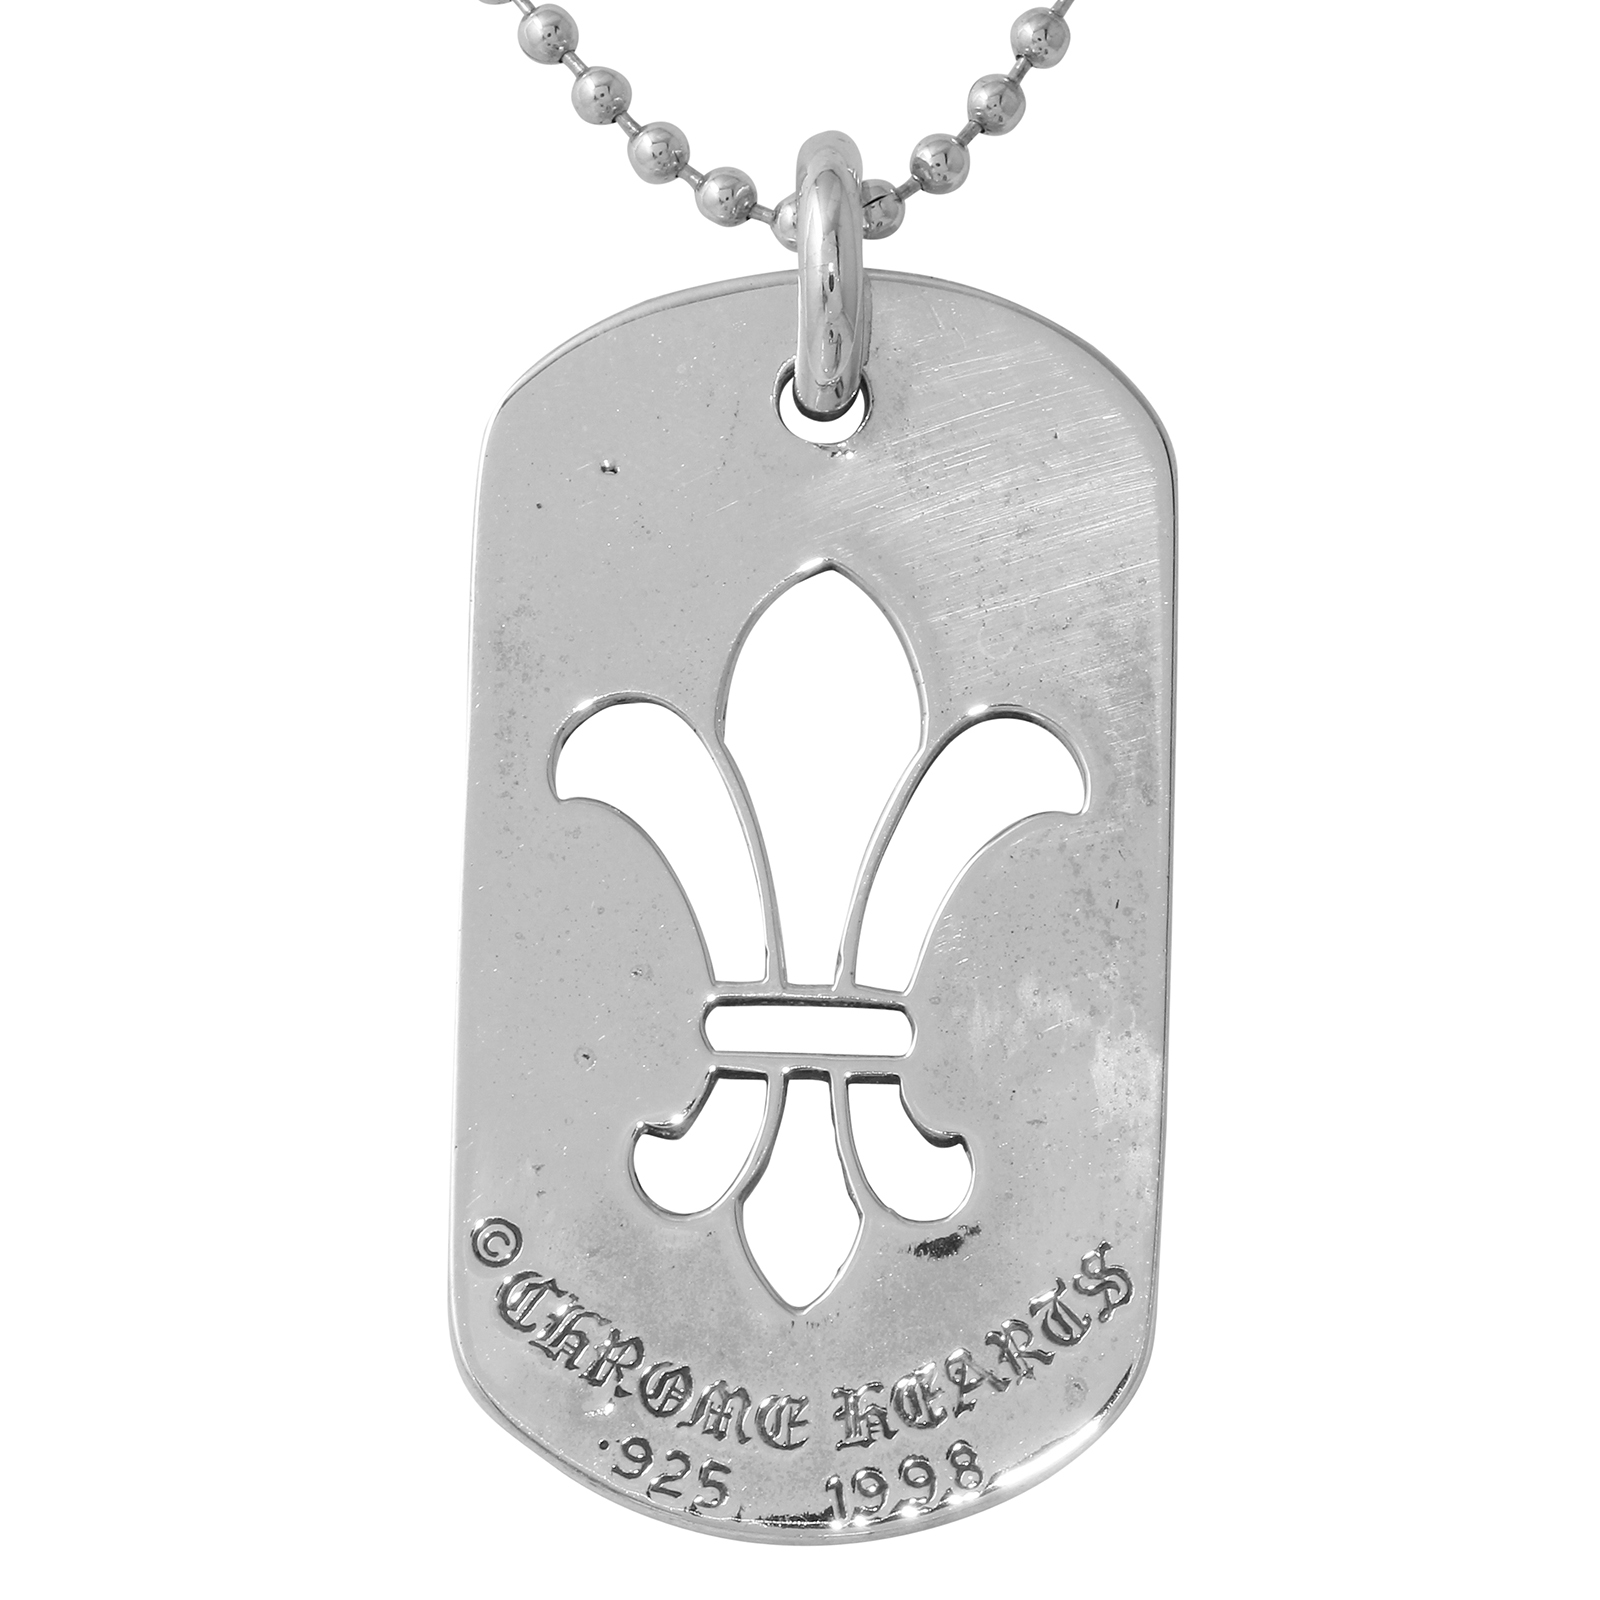 90dca5c4b436 Chrome Hearts Sterling Silver Dog Tag Necklace 30